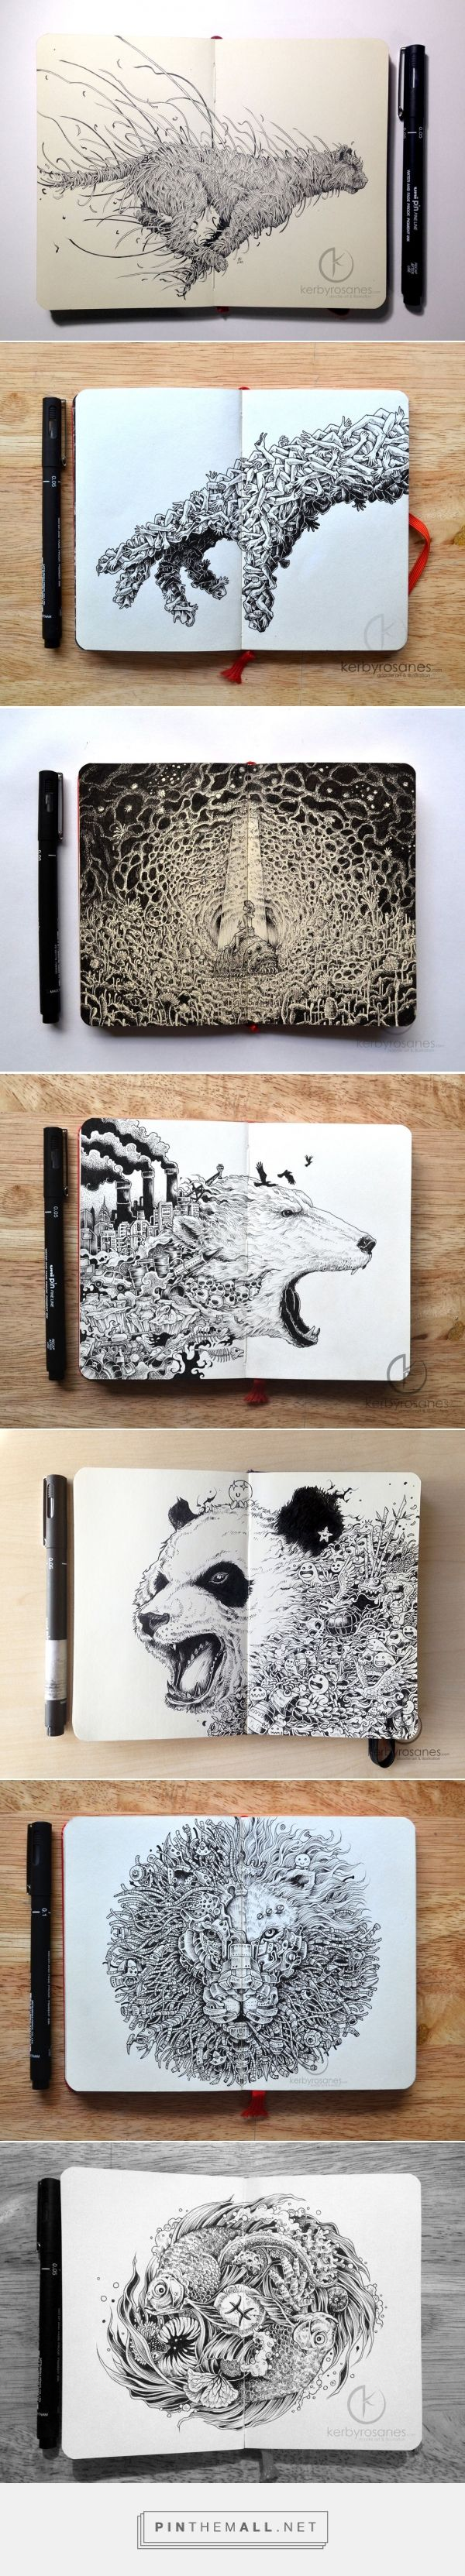 Explosive Moleskine Doodles by Kerby Rosanes | Colossal